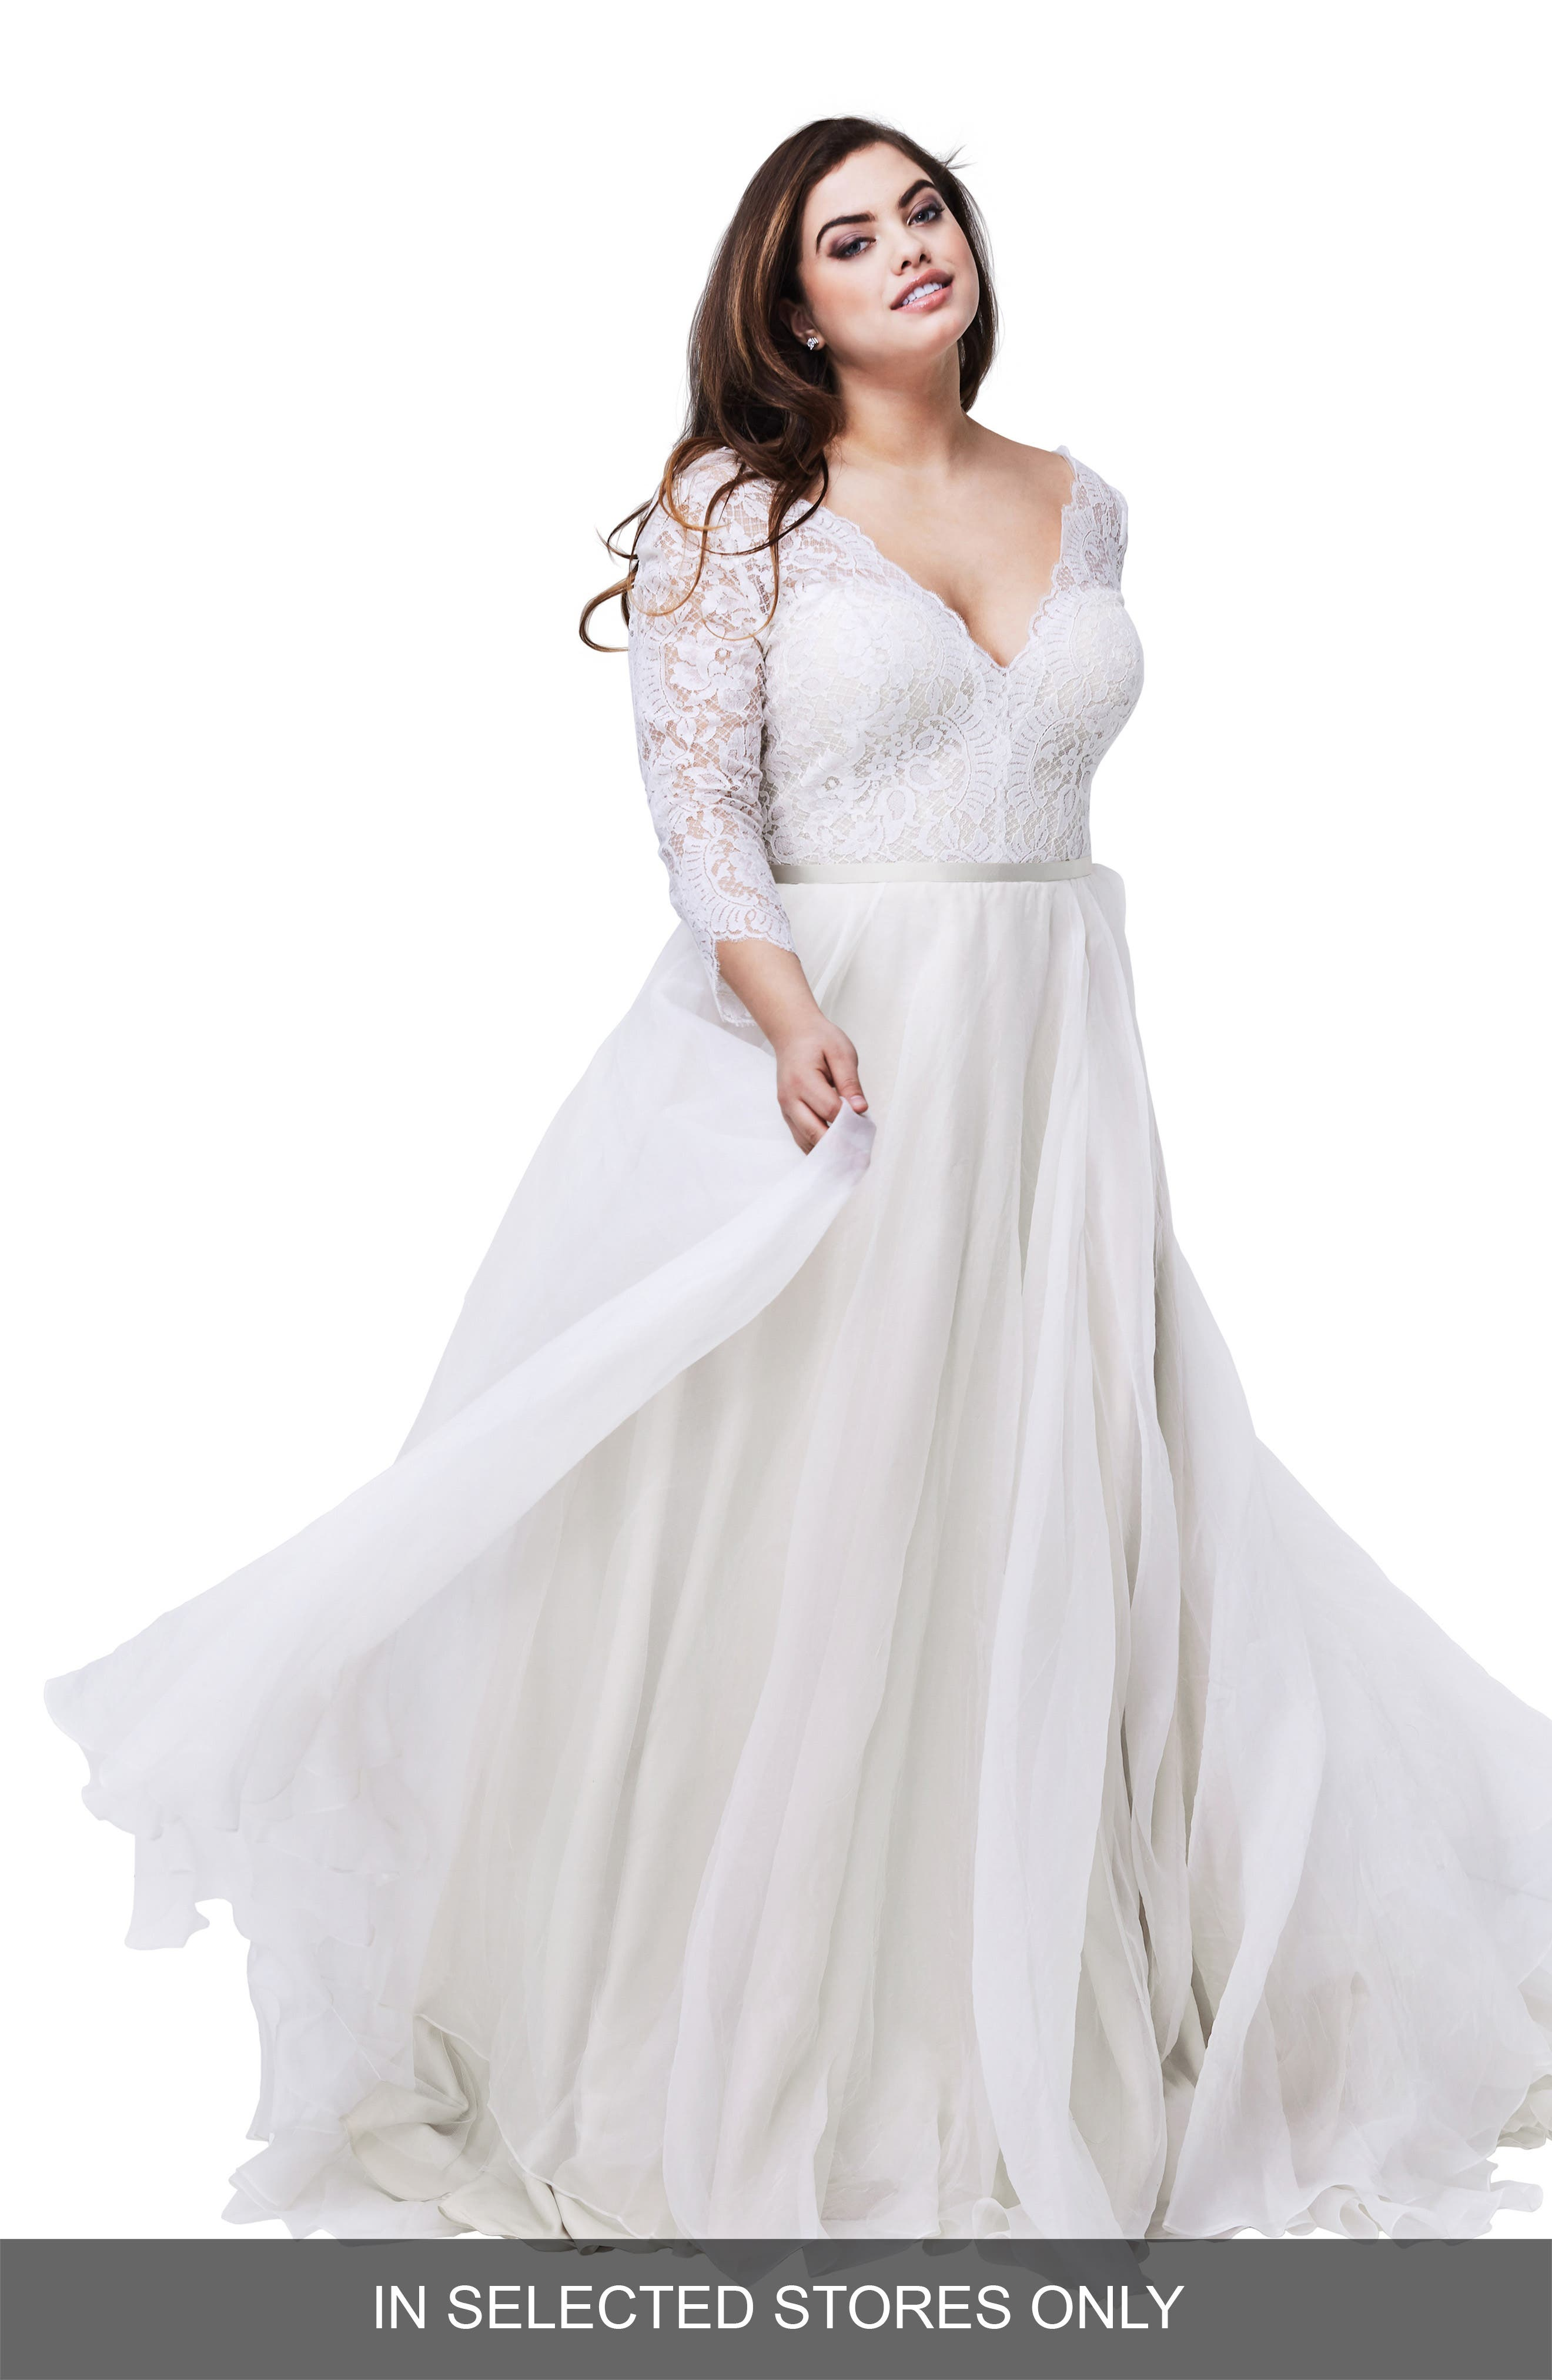 Shiloh Lace & Silk Organza A-Line Gown,                             Main thumbnail 1, color,                             IVORY